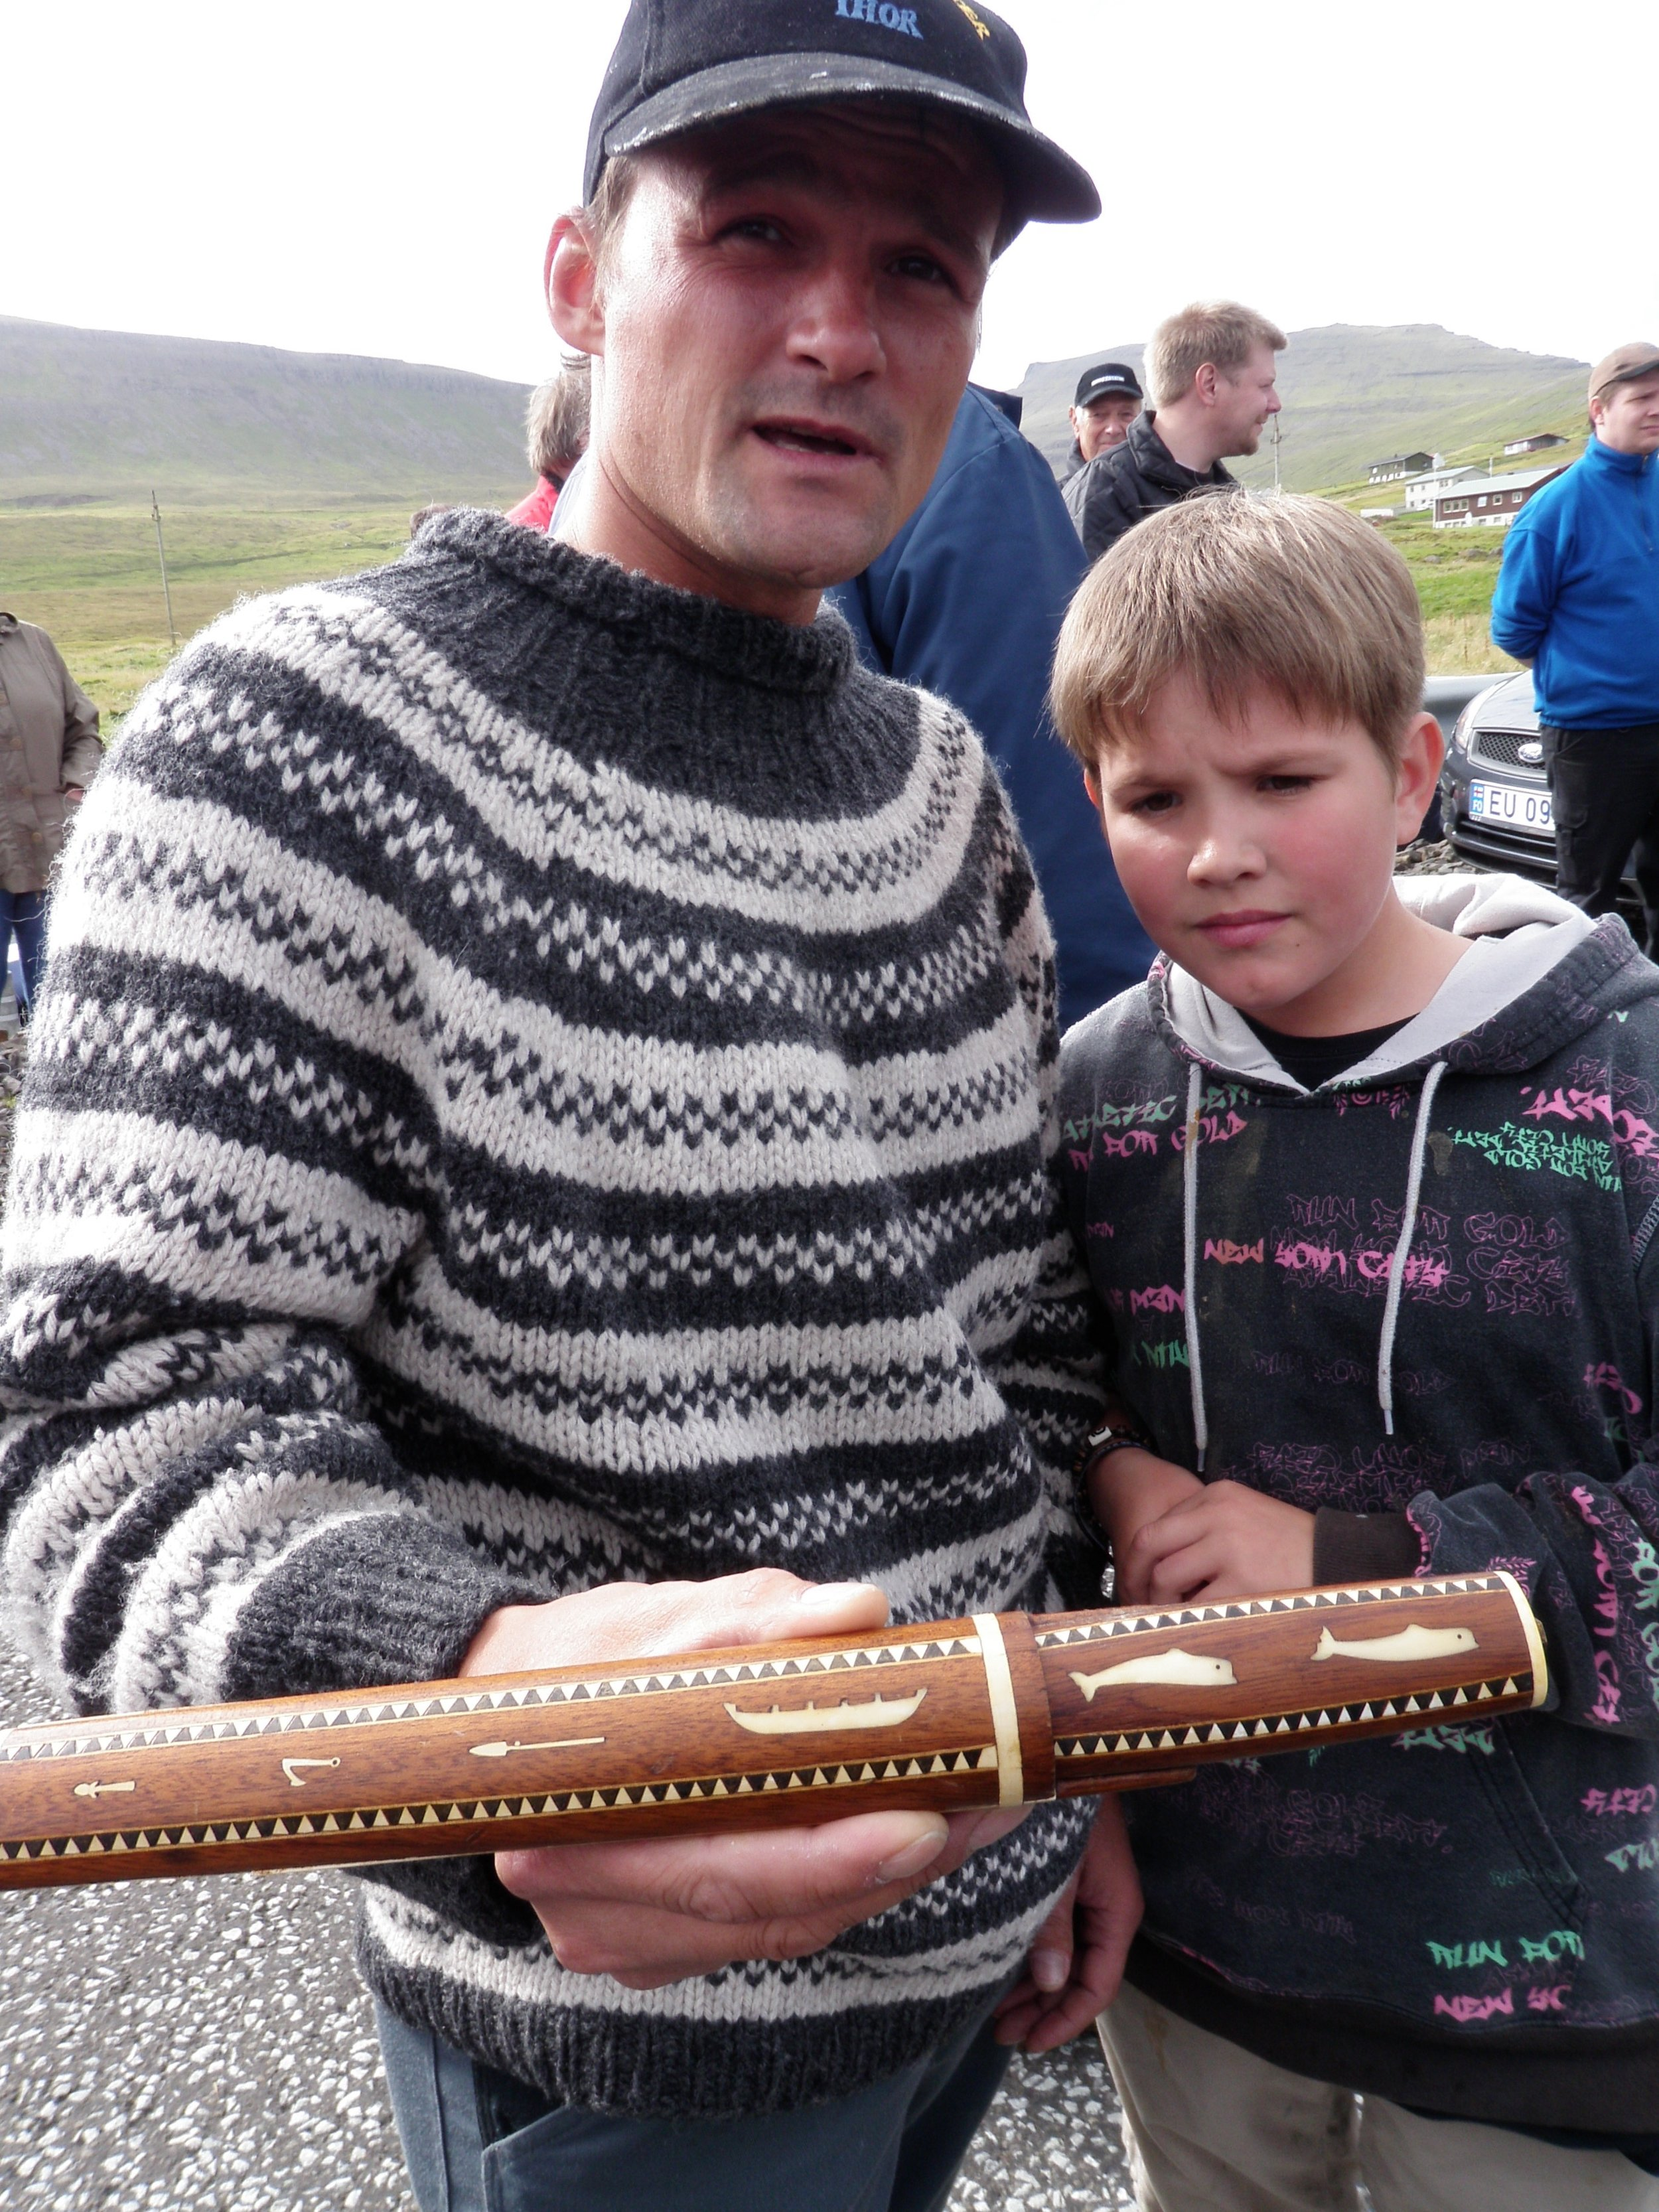 Local man holding a Farose whaling knife. Photo: Russell Fielding